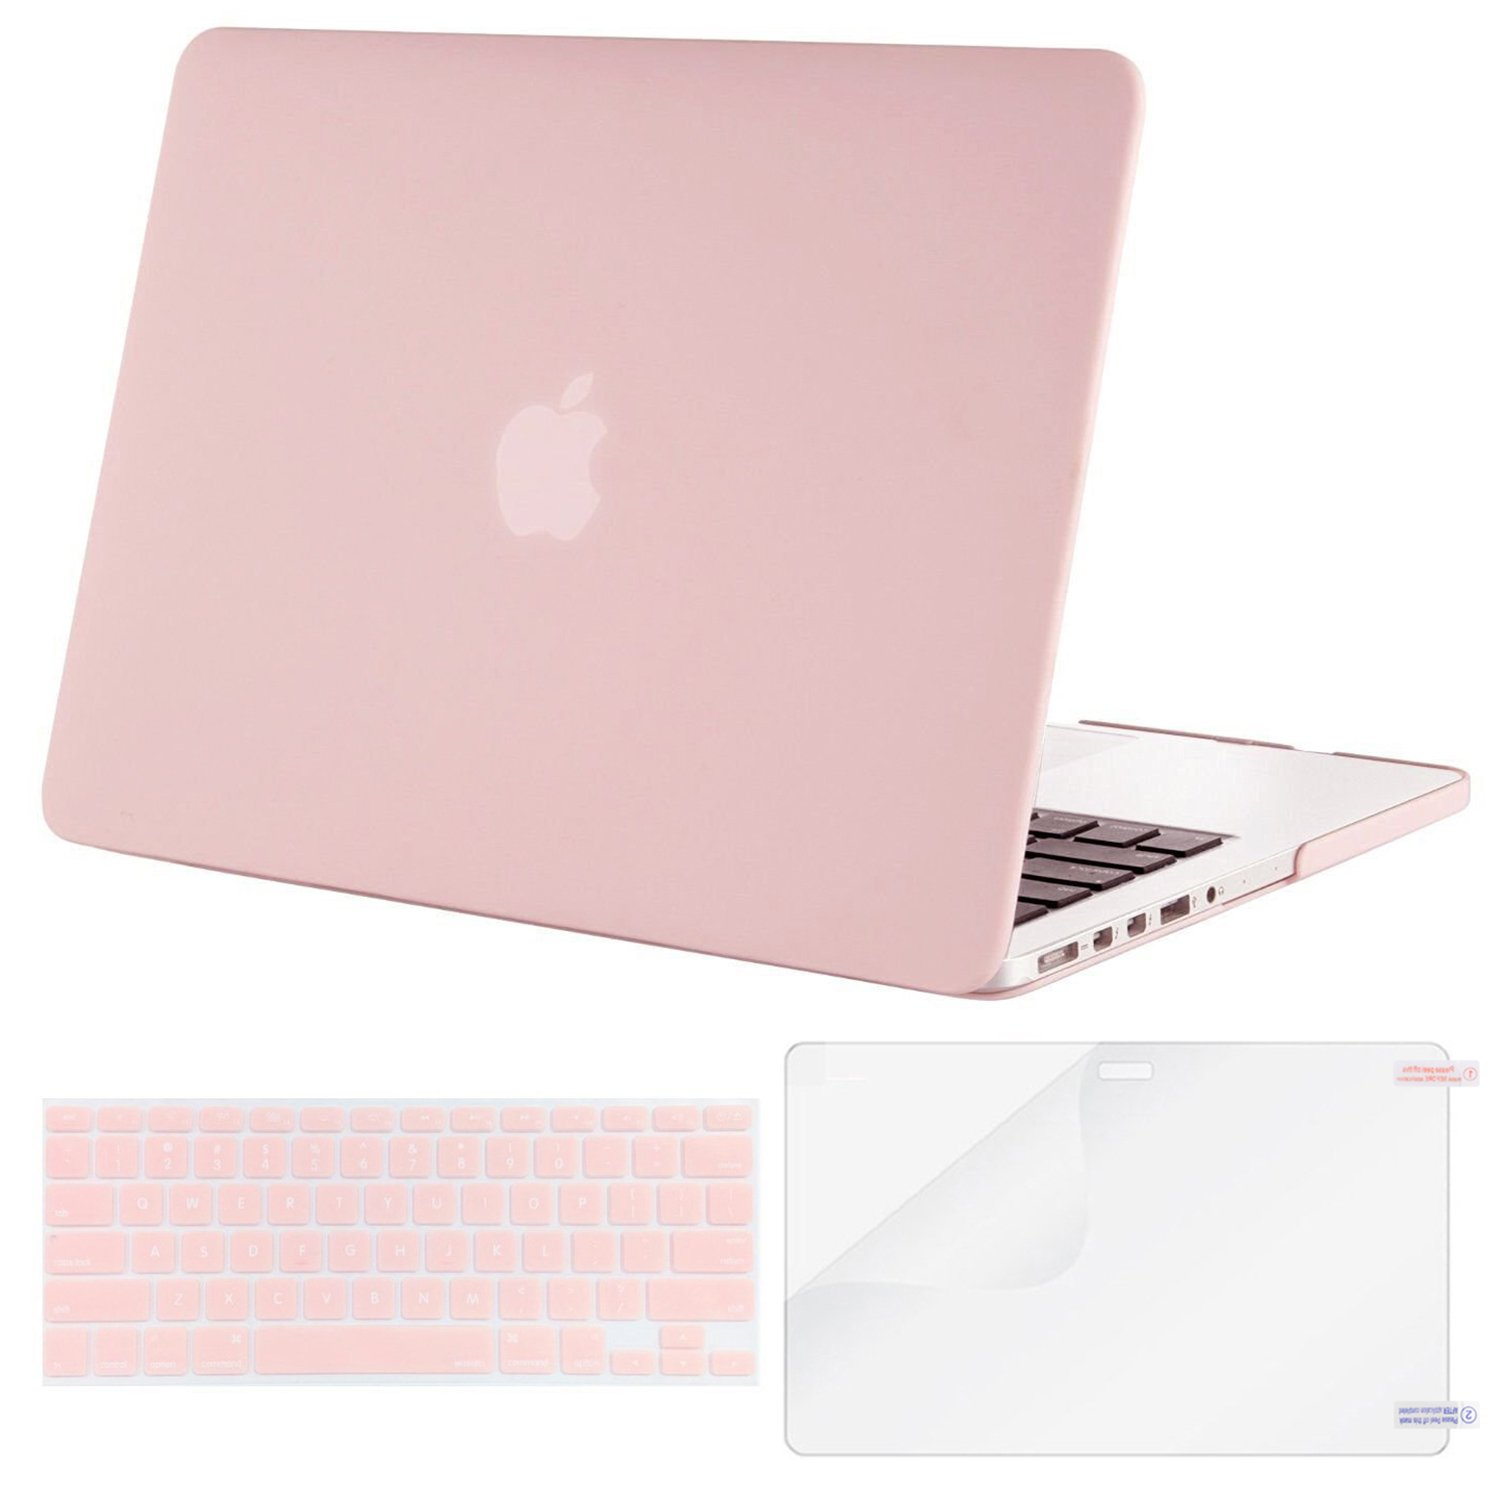 MOSISO Plastic Hard Case with Keyboard Cover with Screen Protector Only Compatible MacBook Pro (No USB-C) Retina 13 Inch (W/O CD-ROM)(A1502/A1425), Release 2015/2014/2013/end 2012, Rose Quartz by MOSISO